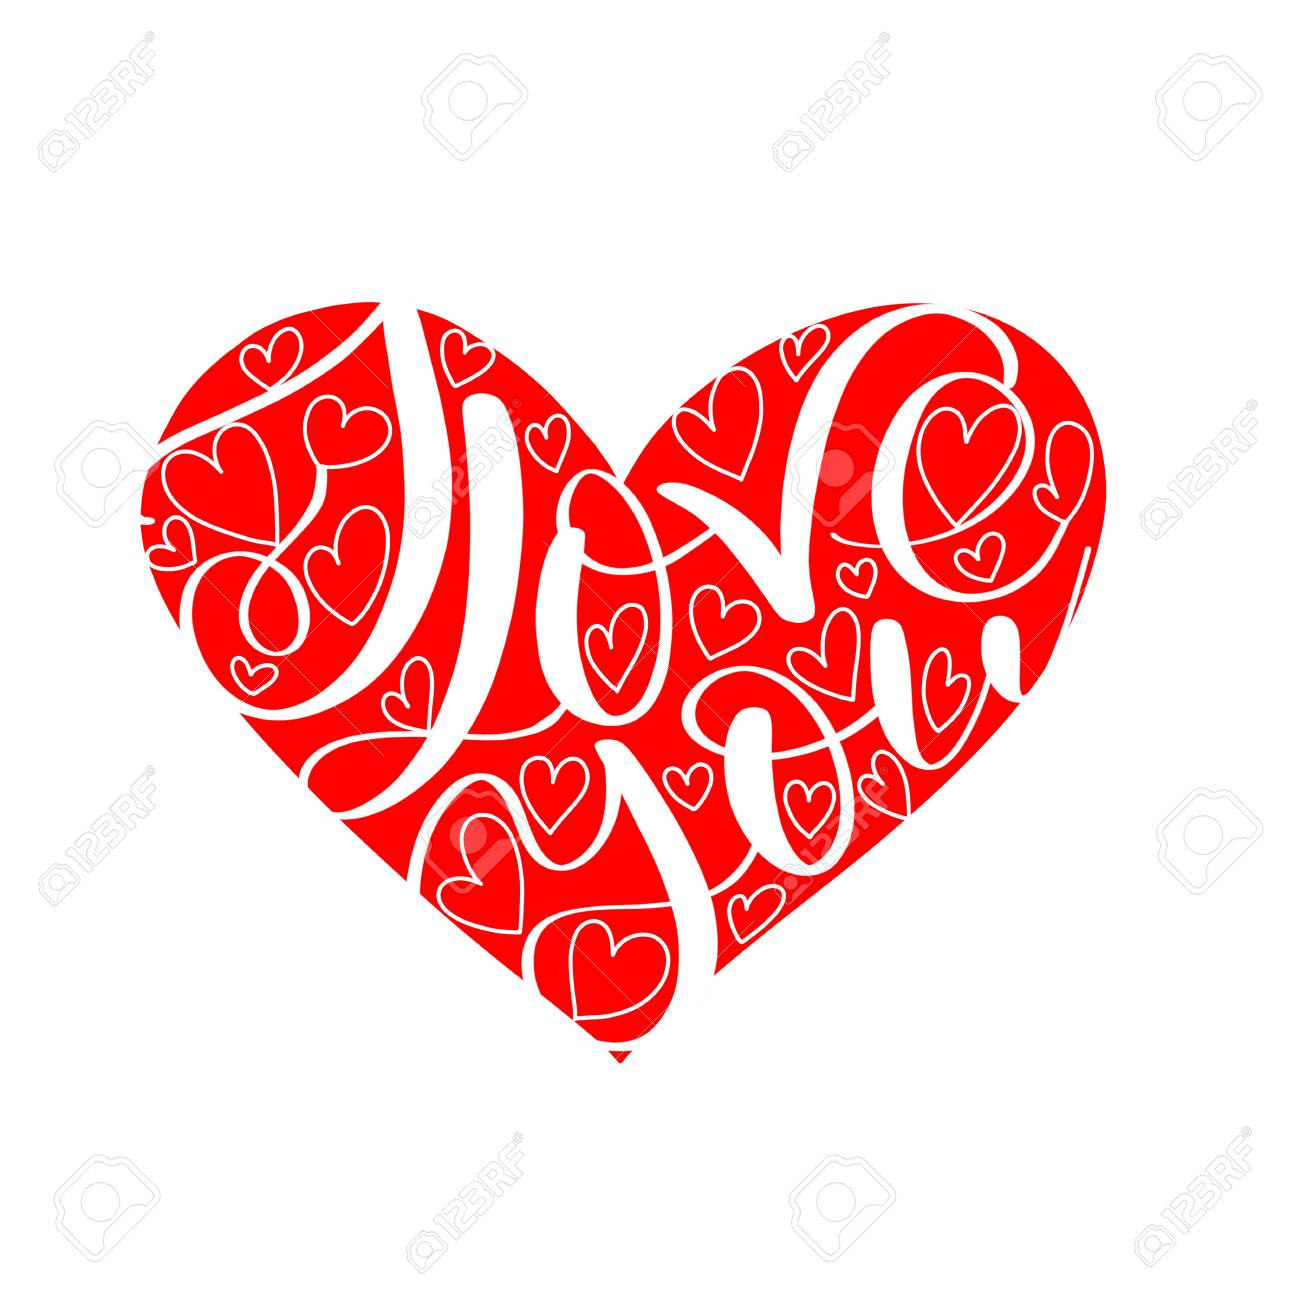 I LOVE you text in red heart shape, Calligraphic love lettering - 93872588